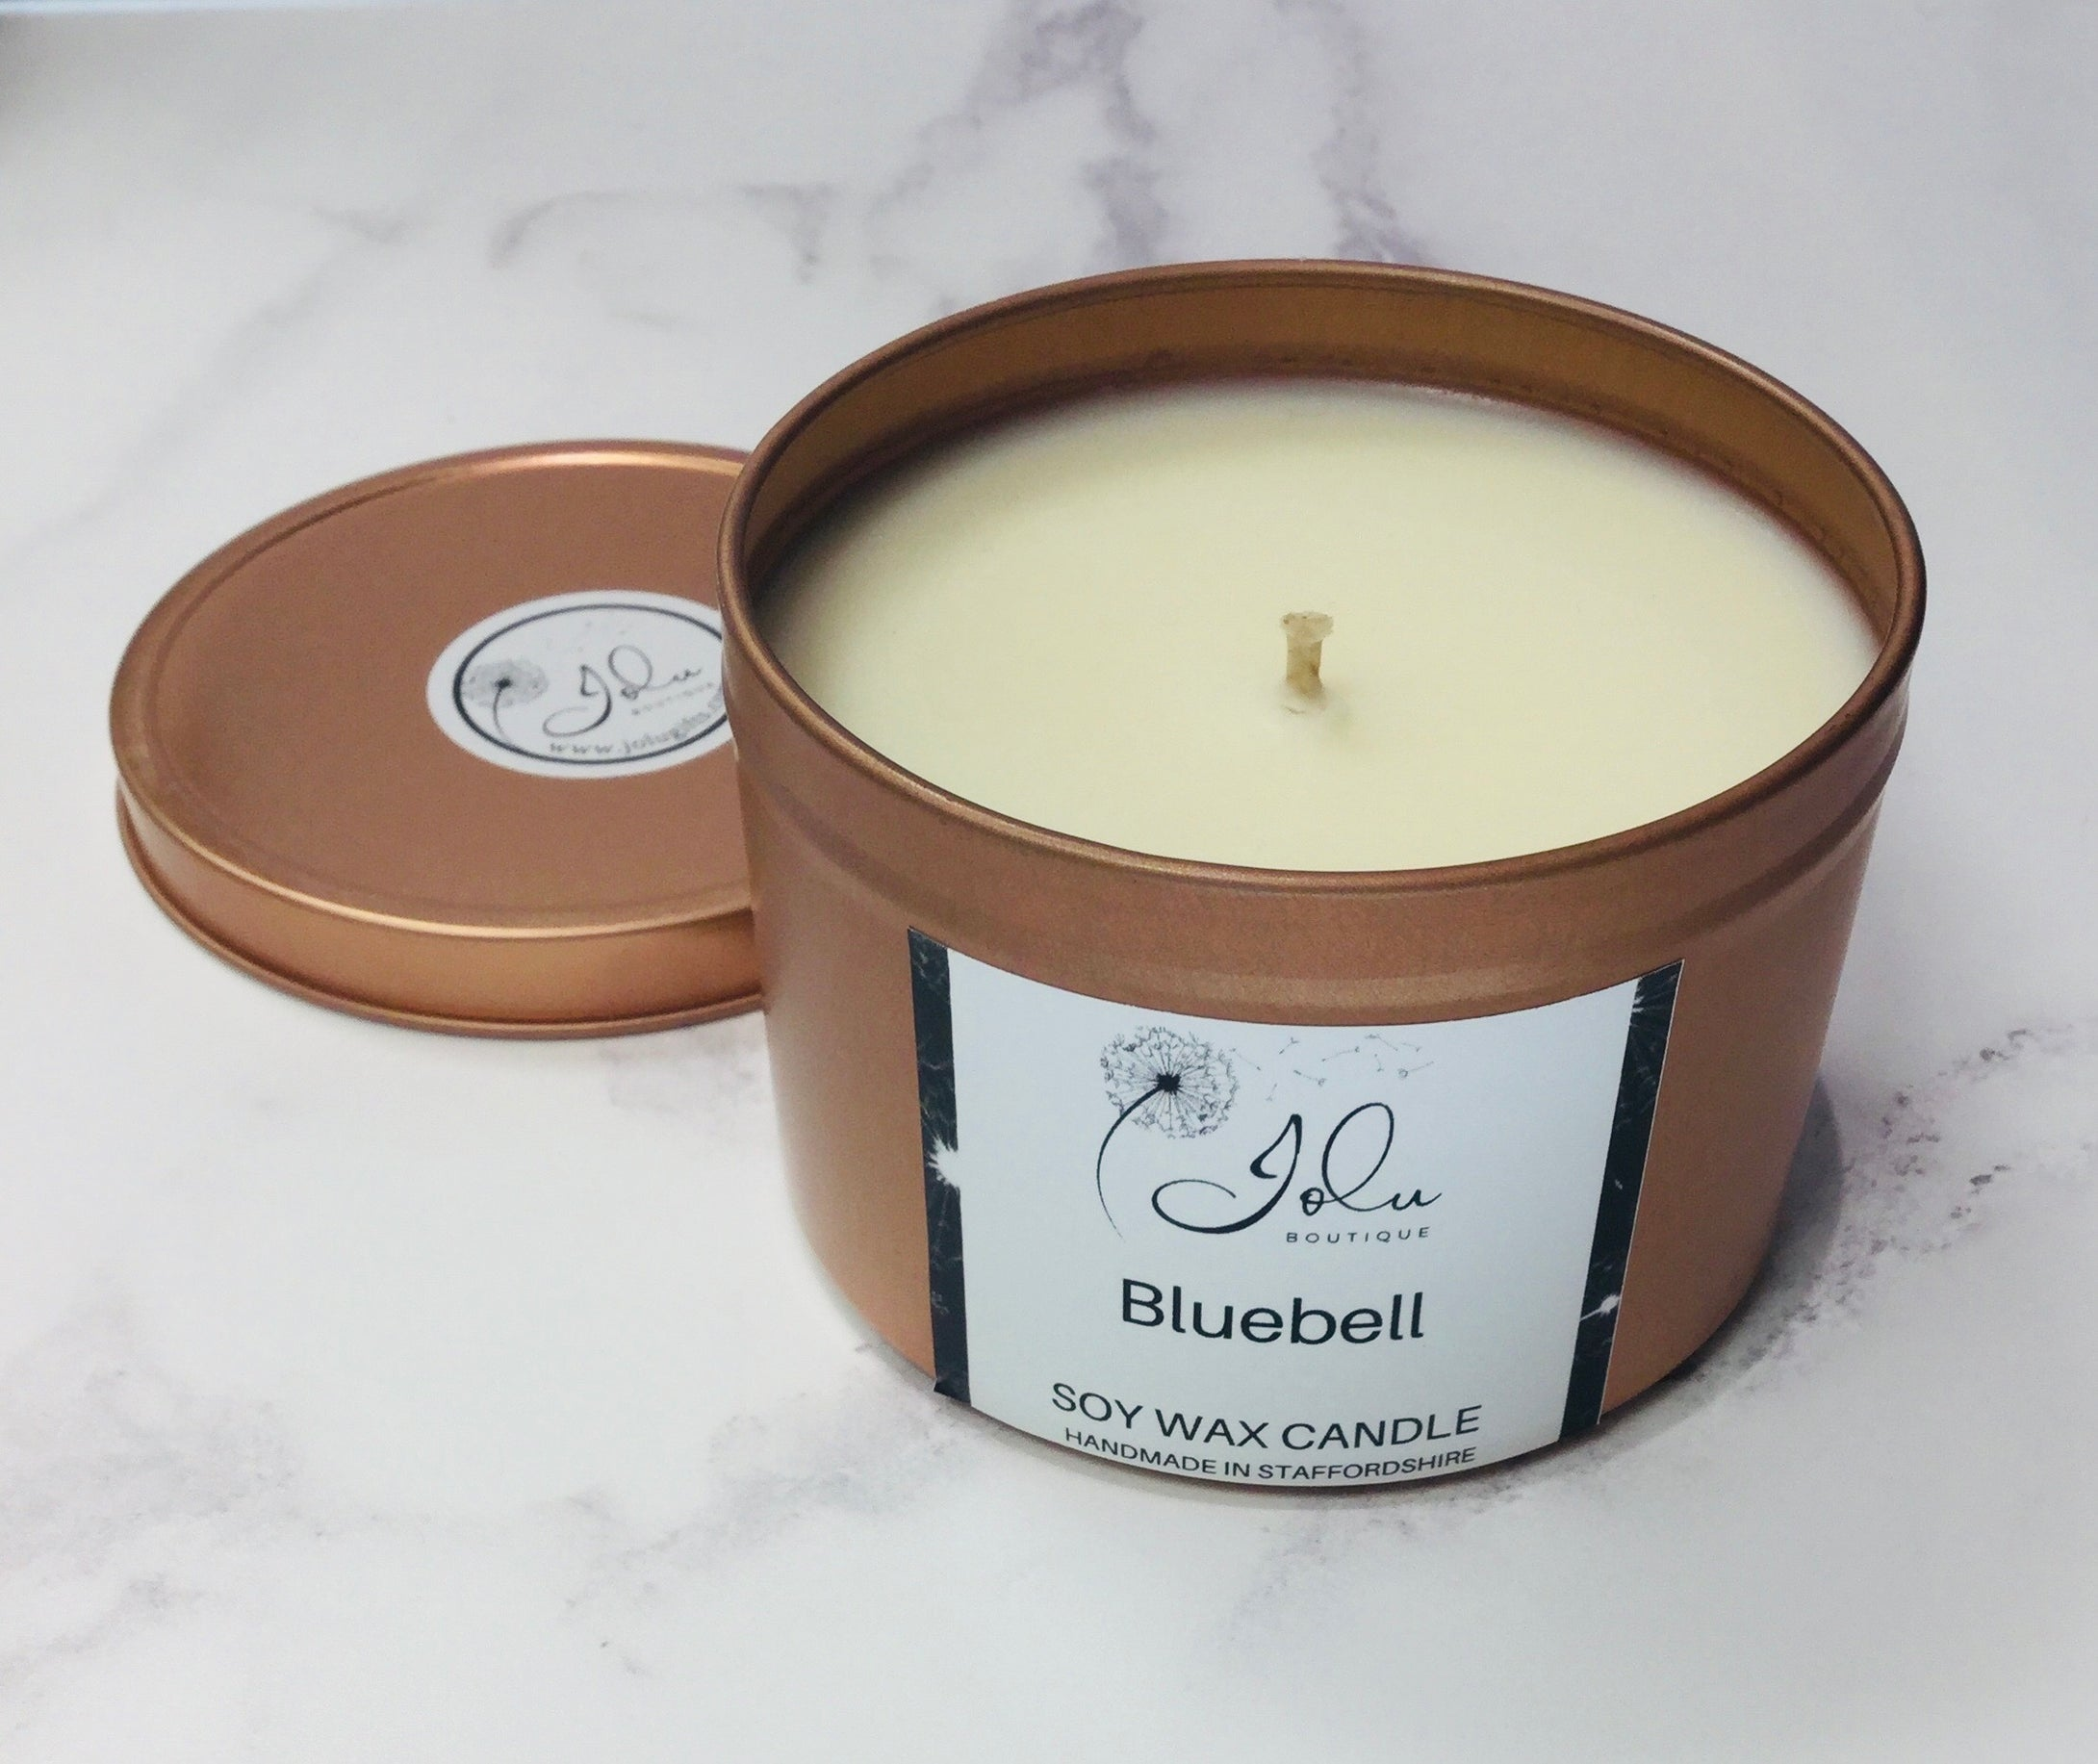 Jolu Boutique Bluebell Soy Wax Candle - Rose Gold Tin